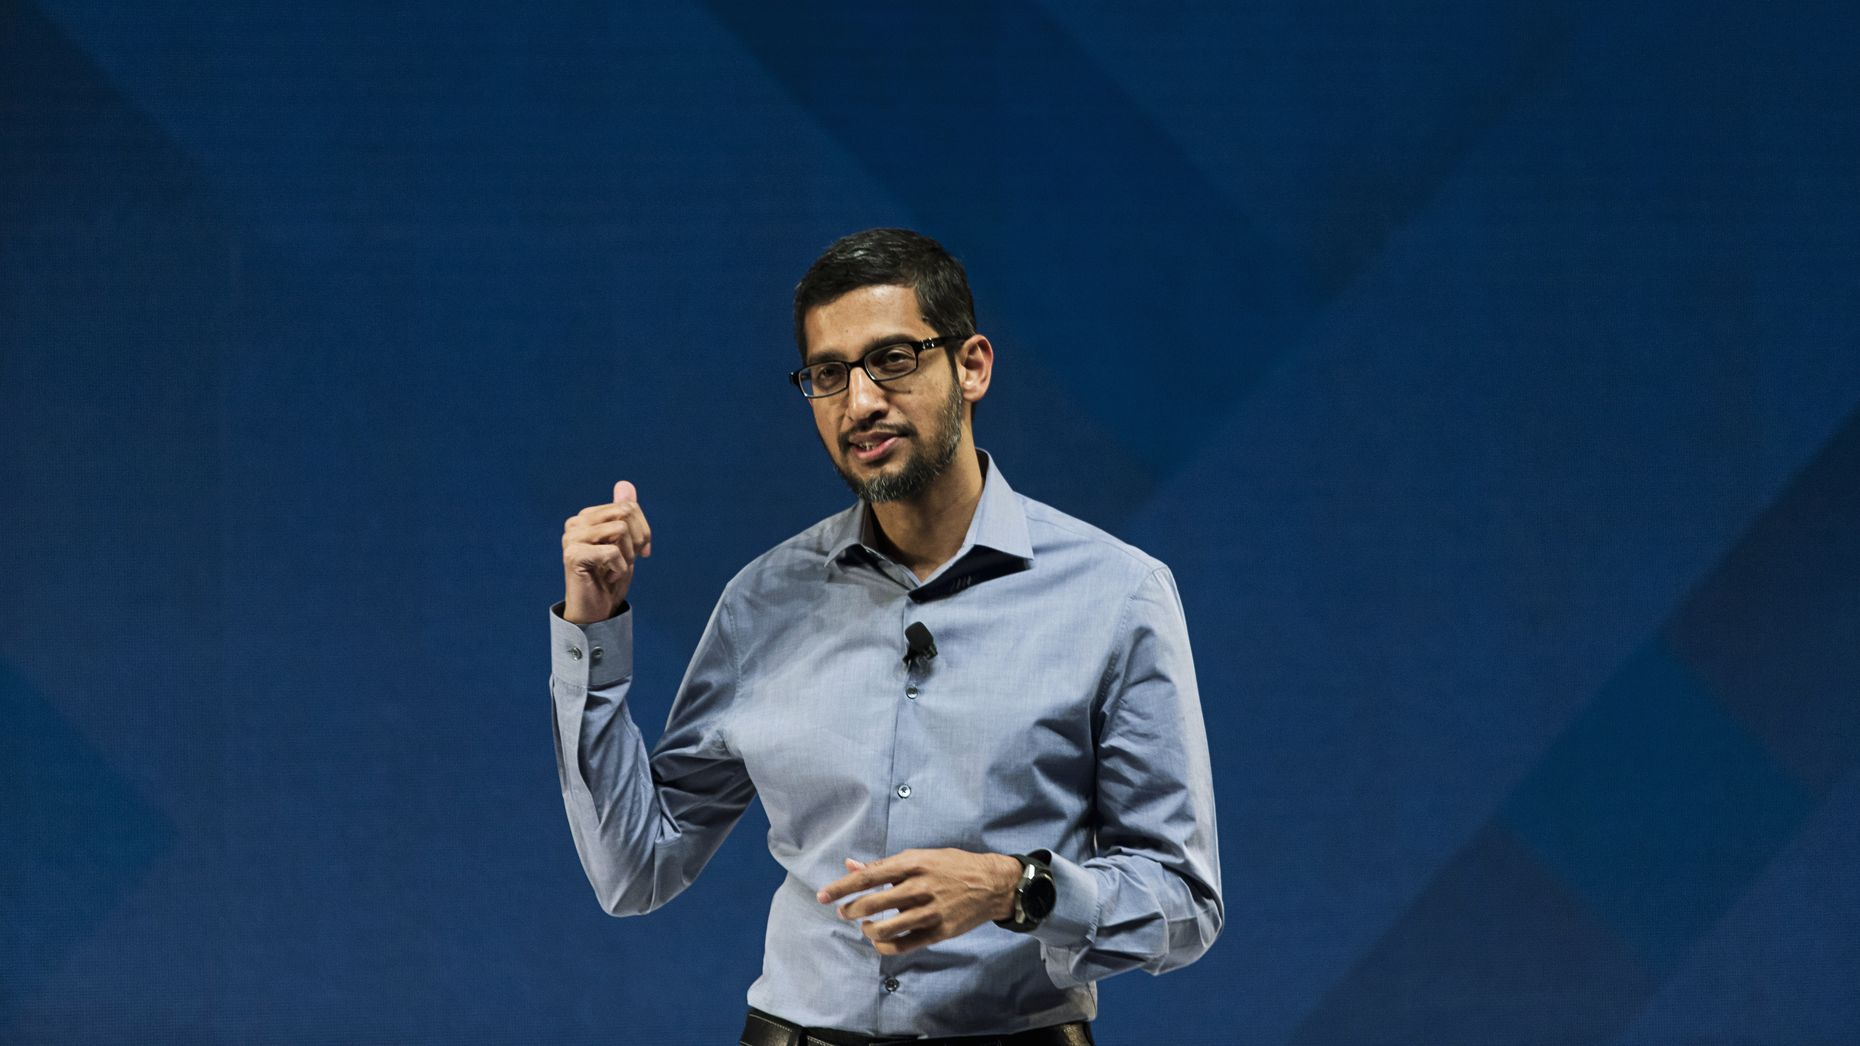 Google CEO Sundar Pichai. Photo by Bloomberg.